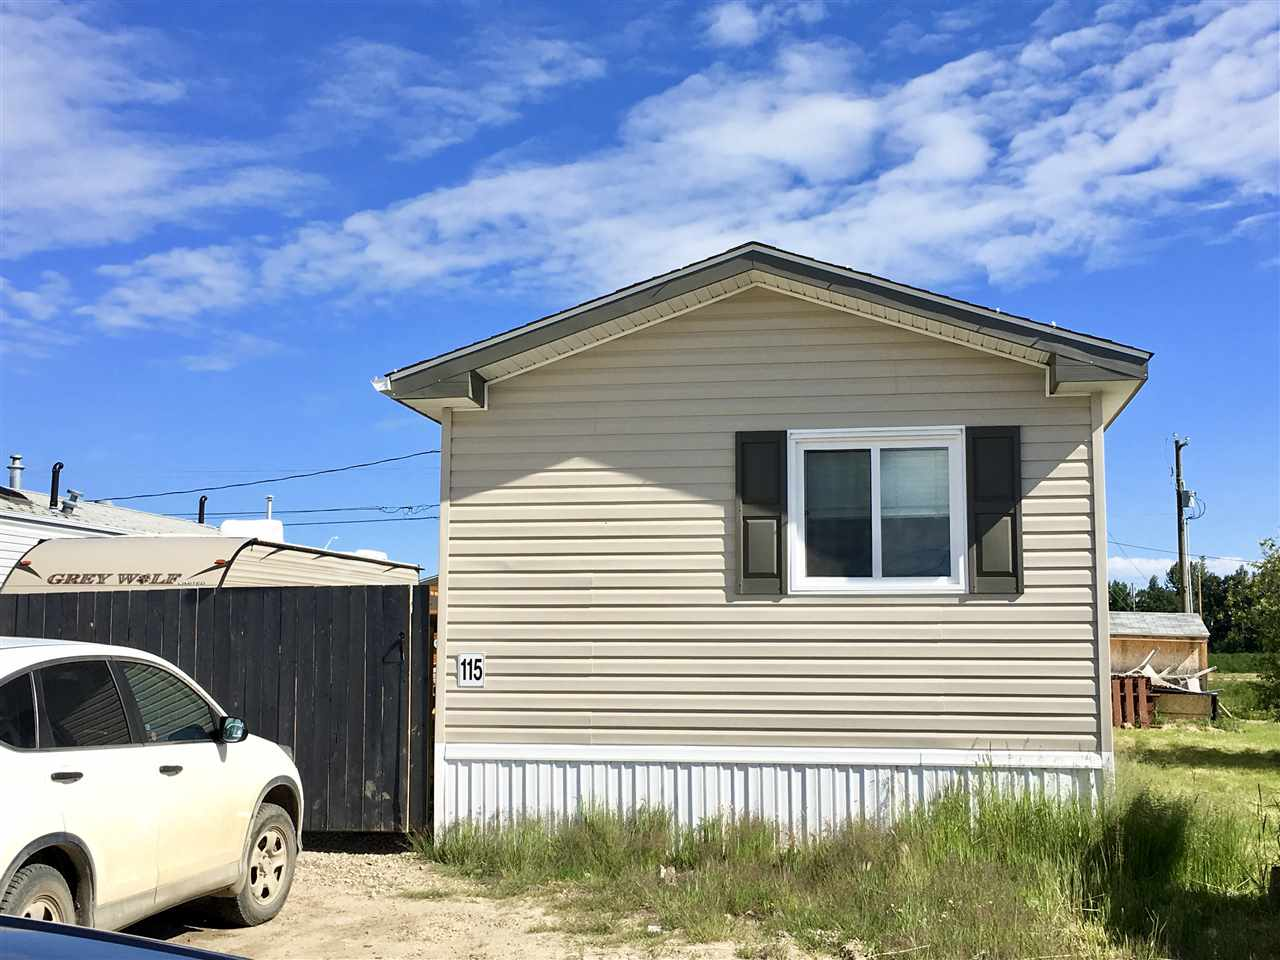 115 Countrystyle MHP, Drayton Valley, AB T7A 1L7